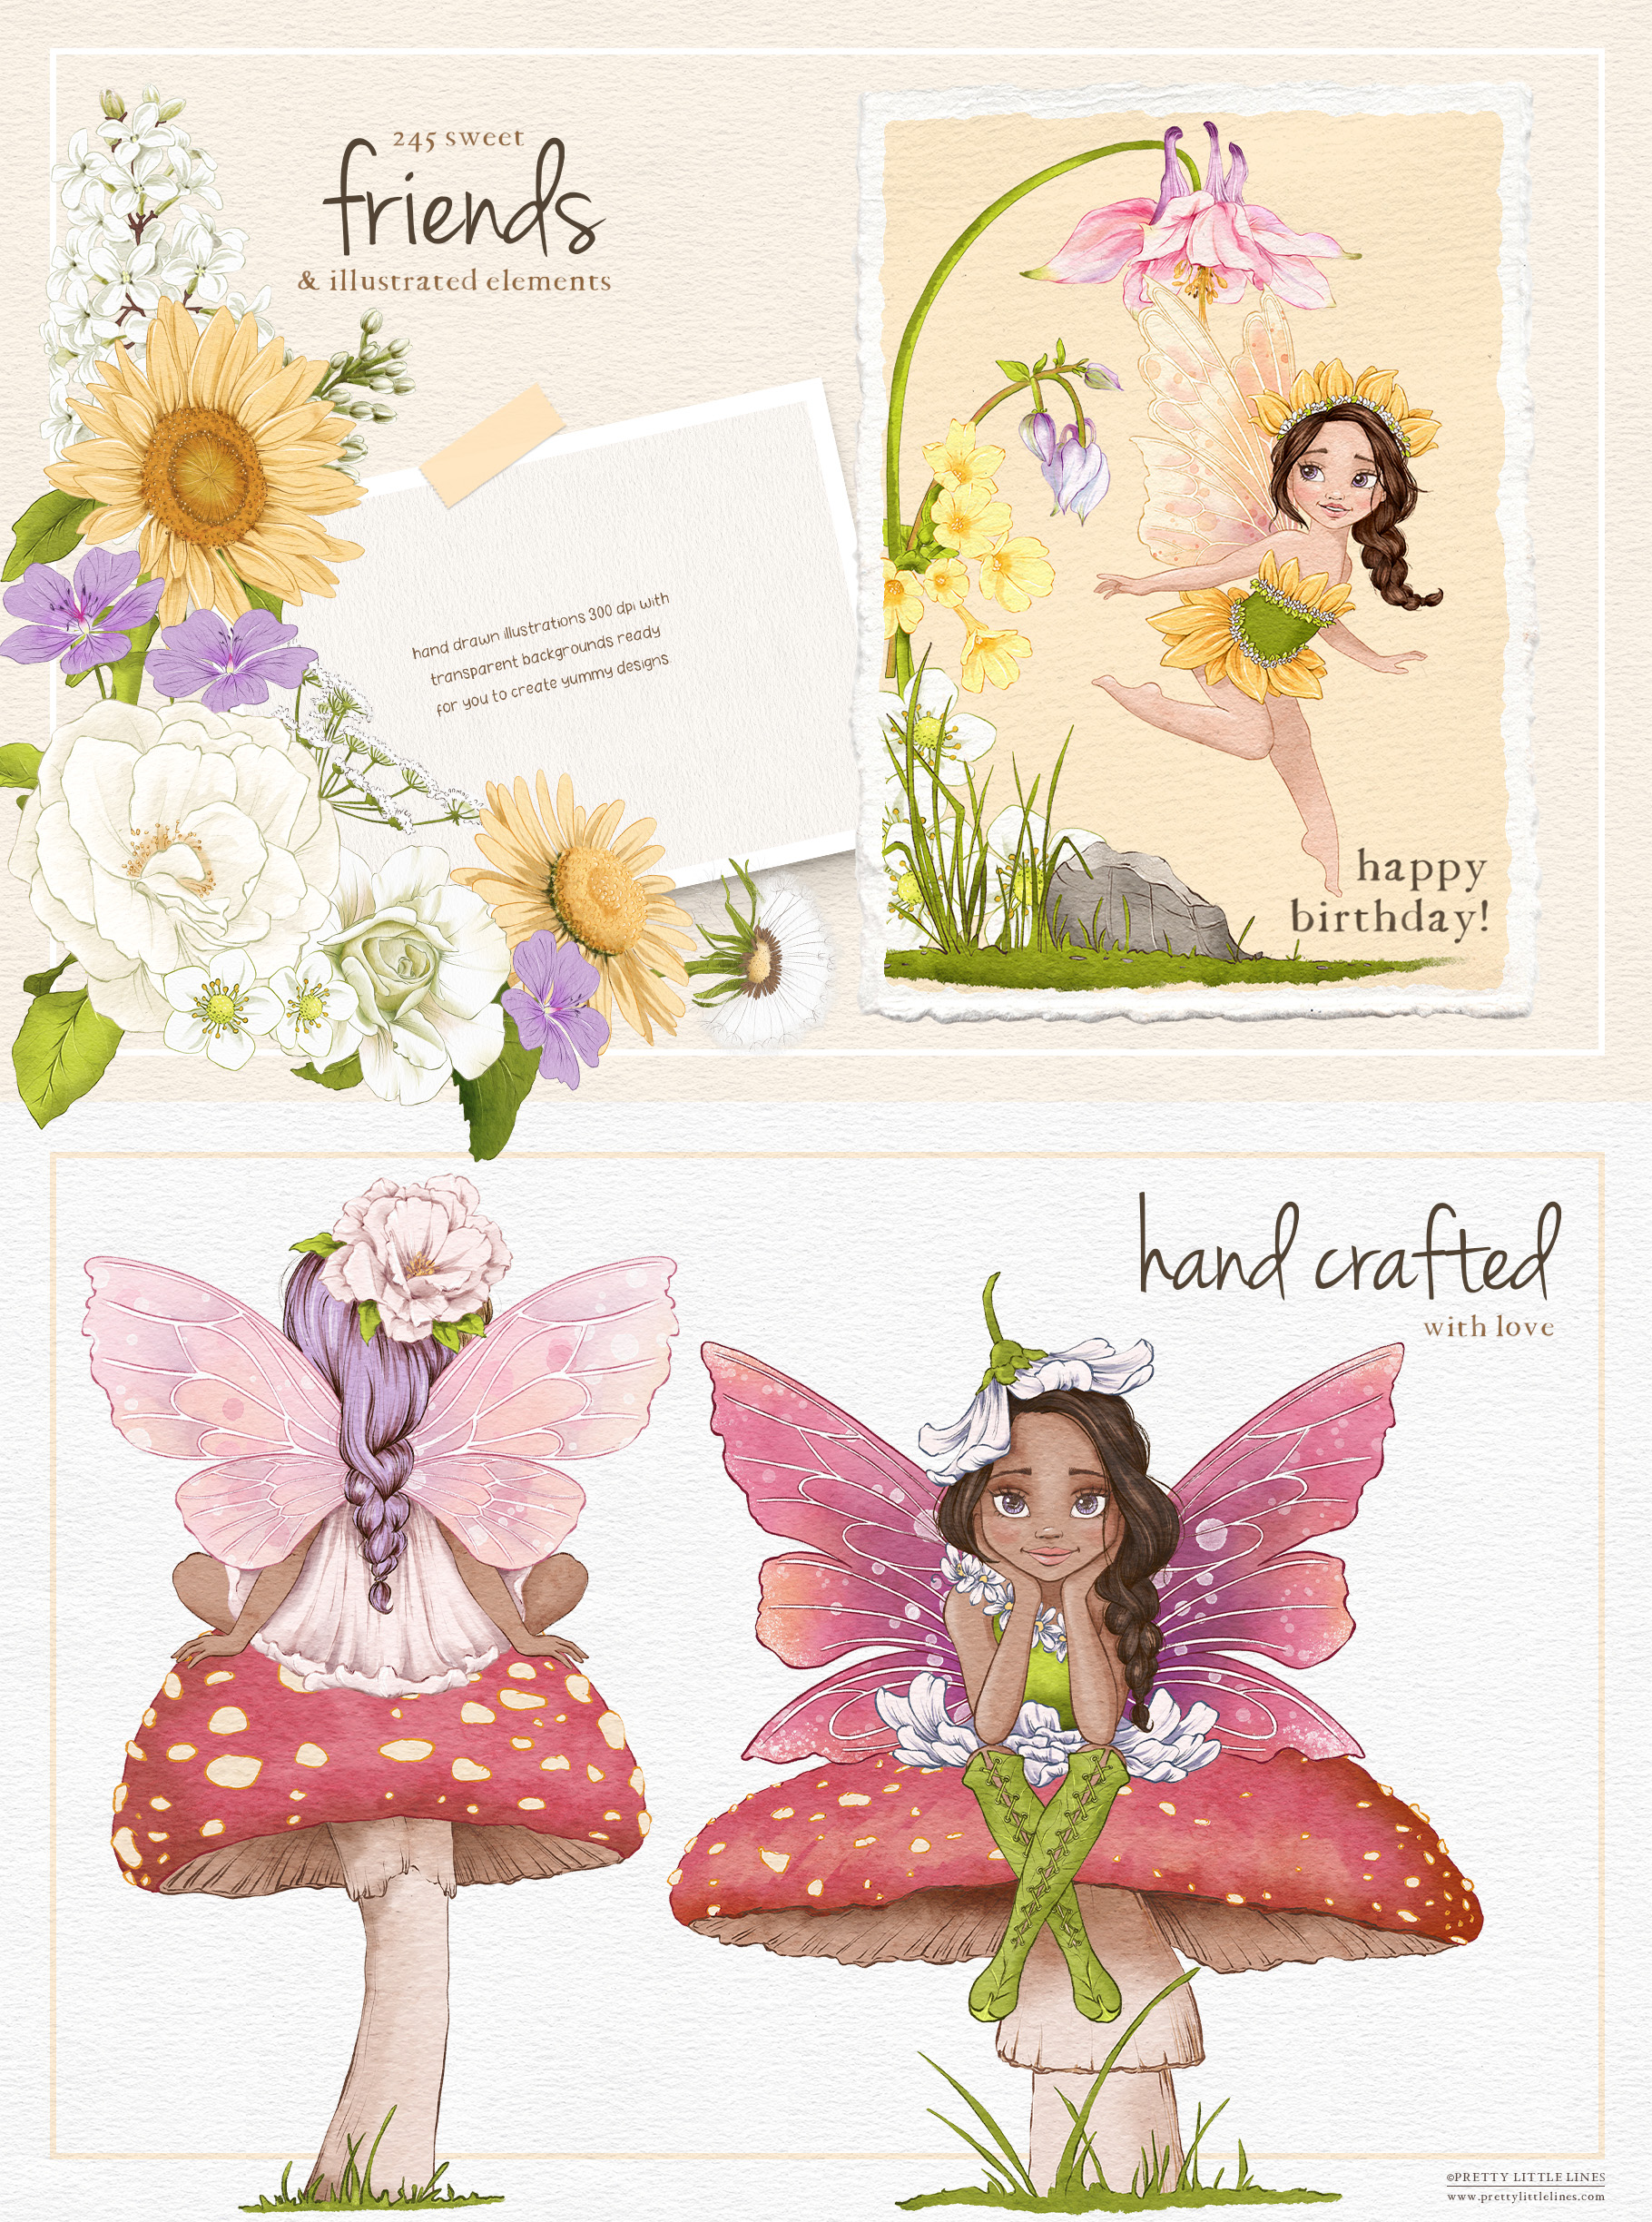 Fairies – A Whimsical Woodland Illustration Collection